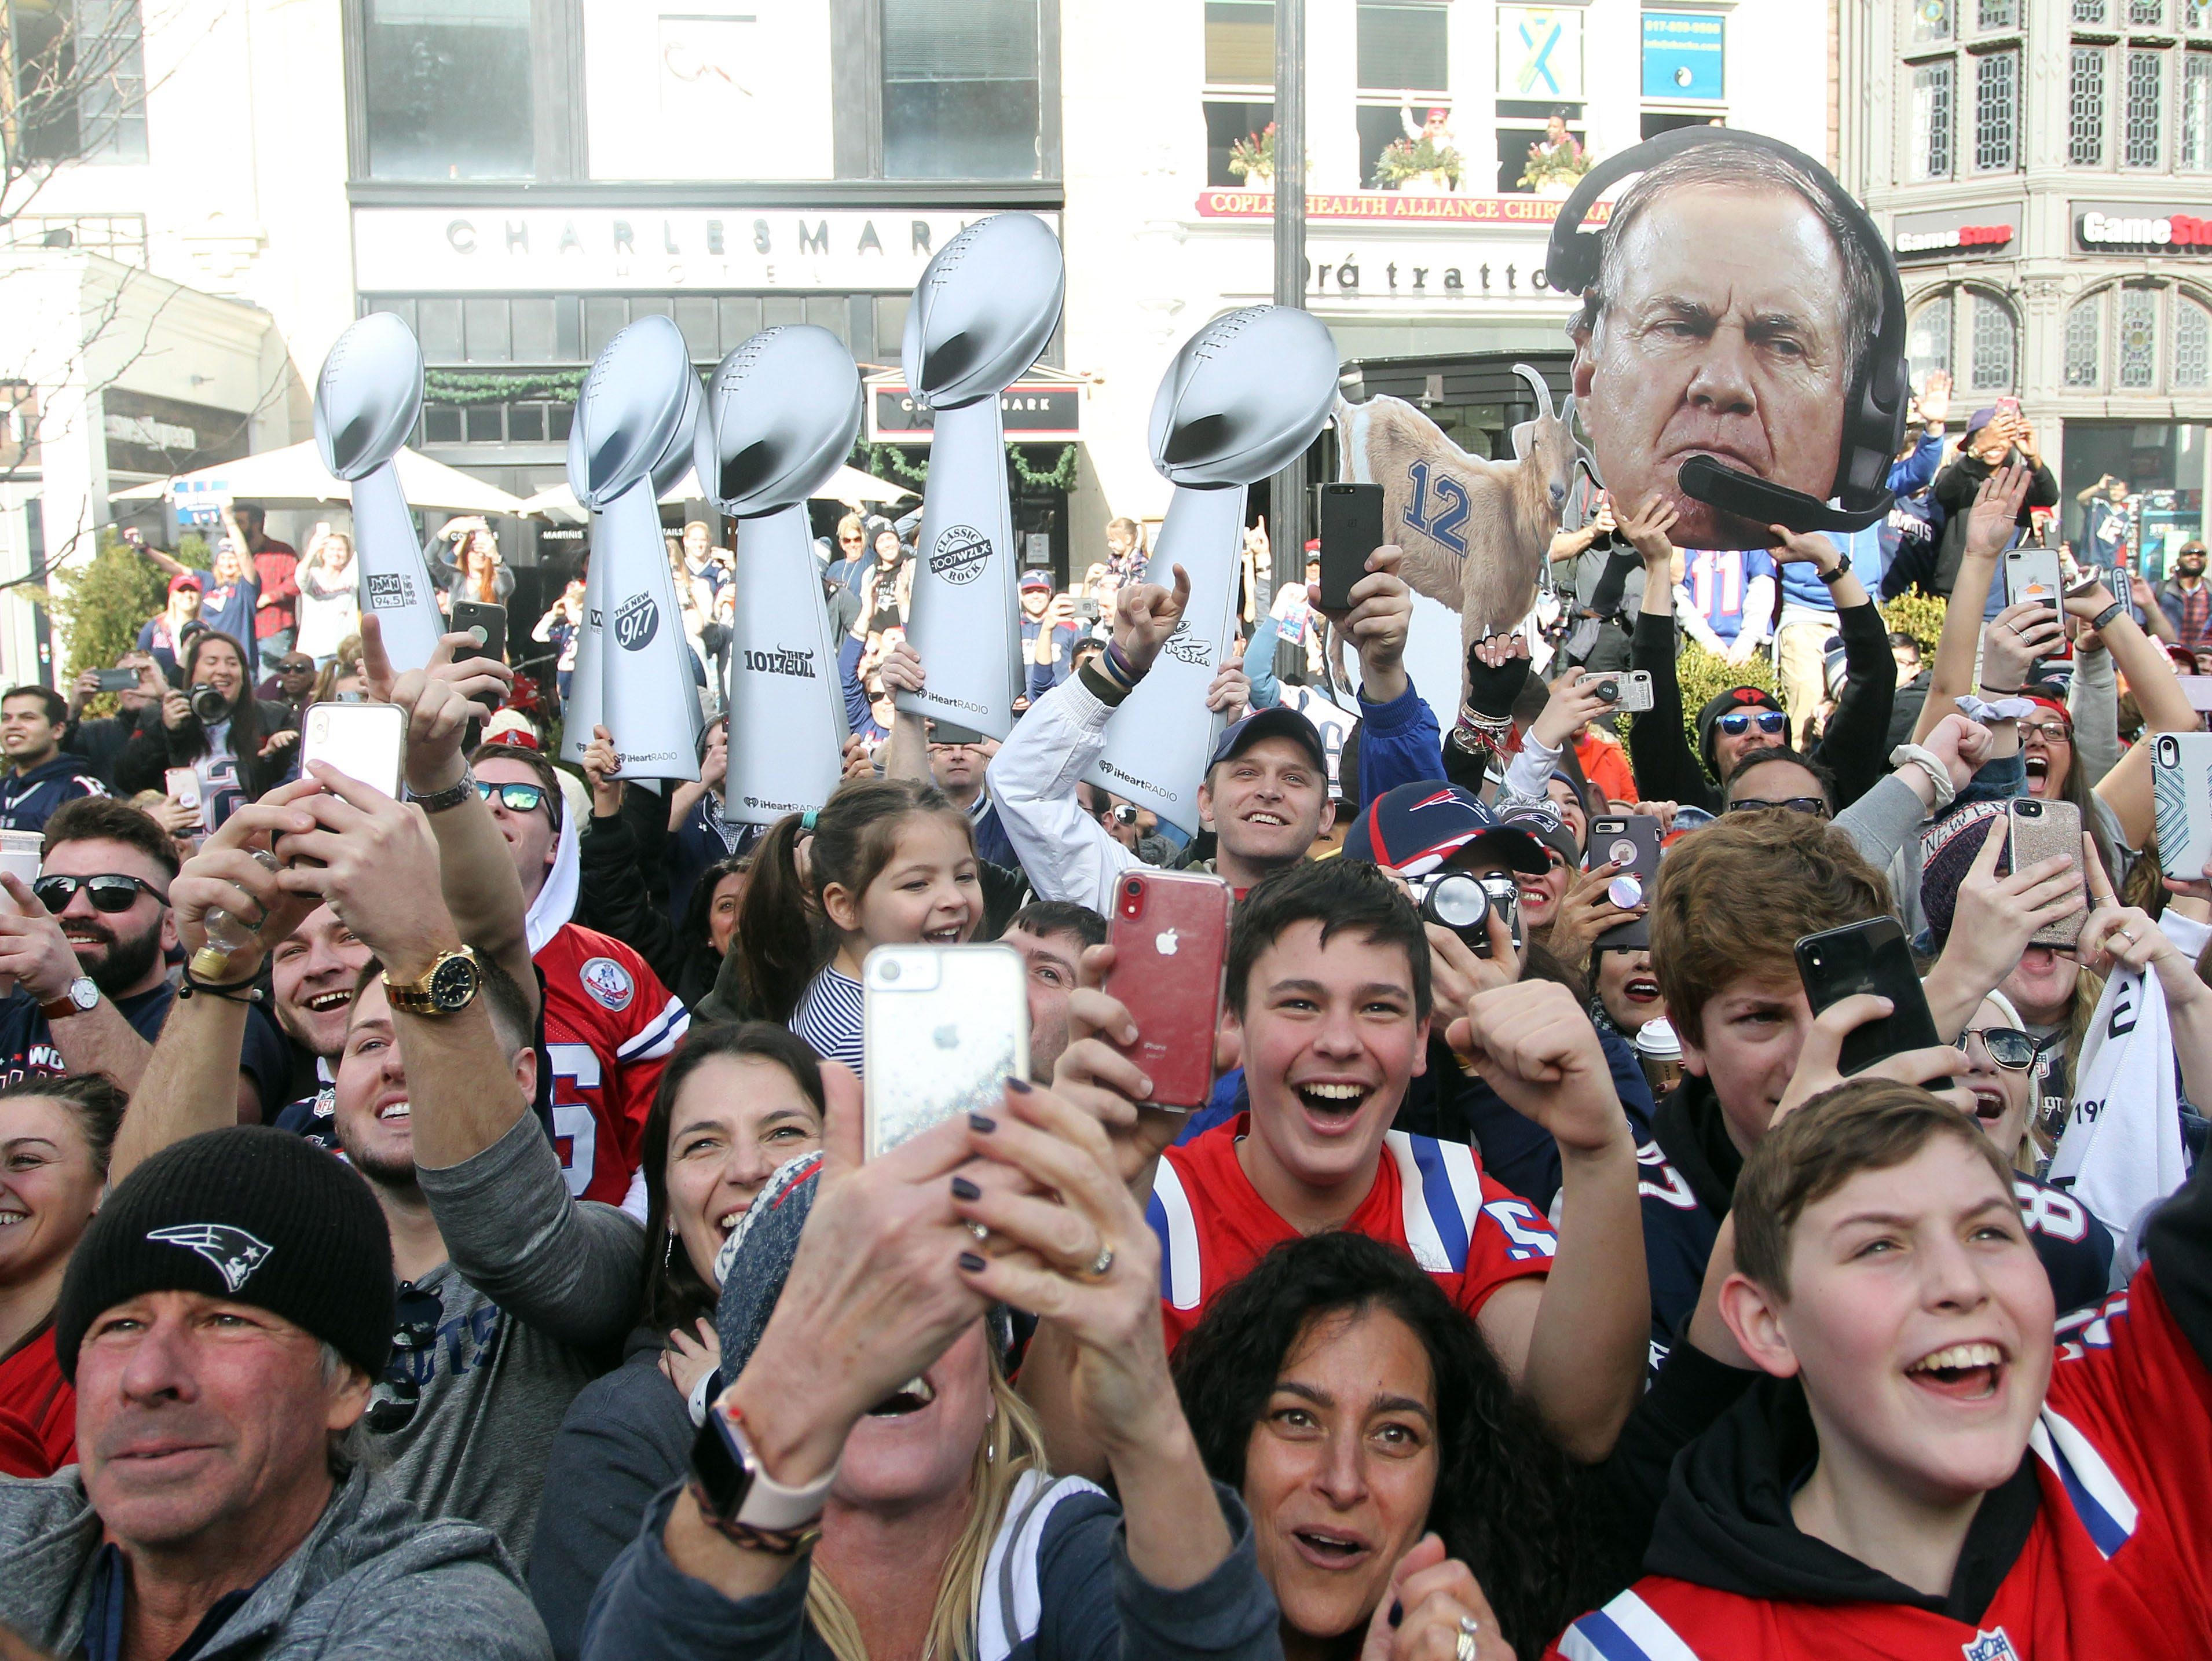 New England Patriots  fans cheer on as New England Patriots head coach Bill Belichick , not pictured, rides by in a duck boat during the Super Bowl LIII championship parade.